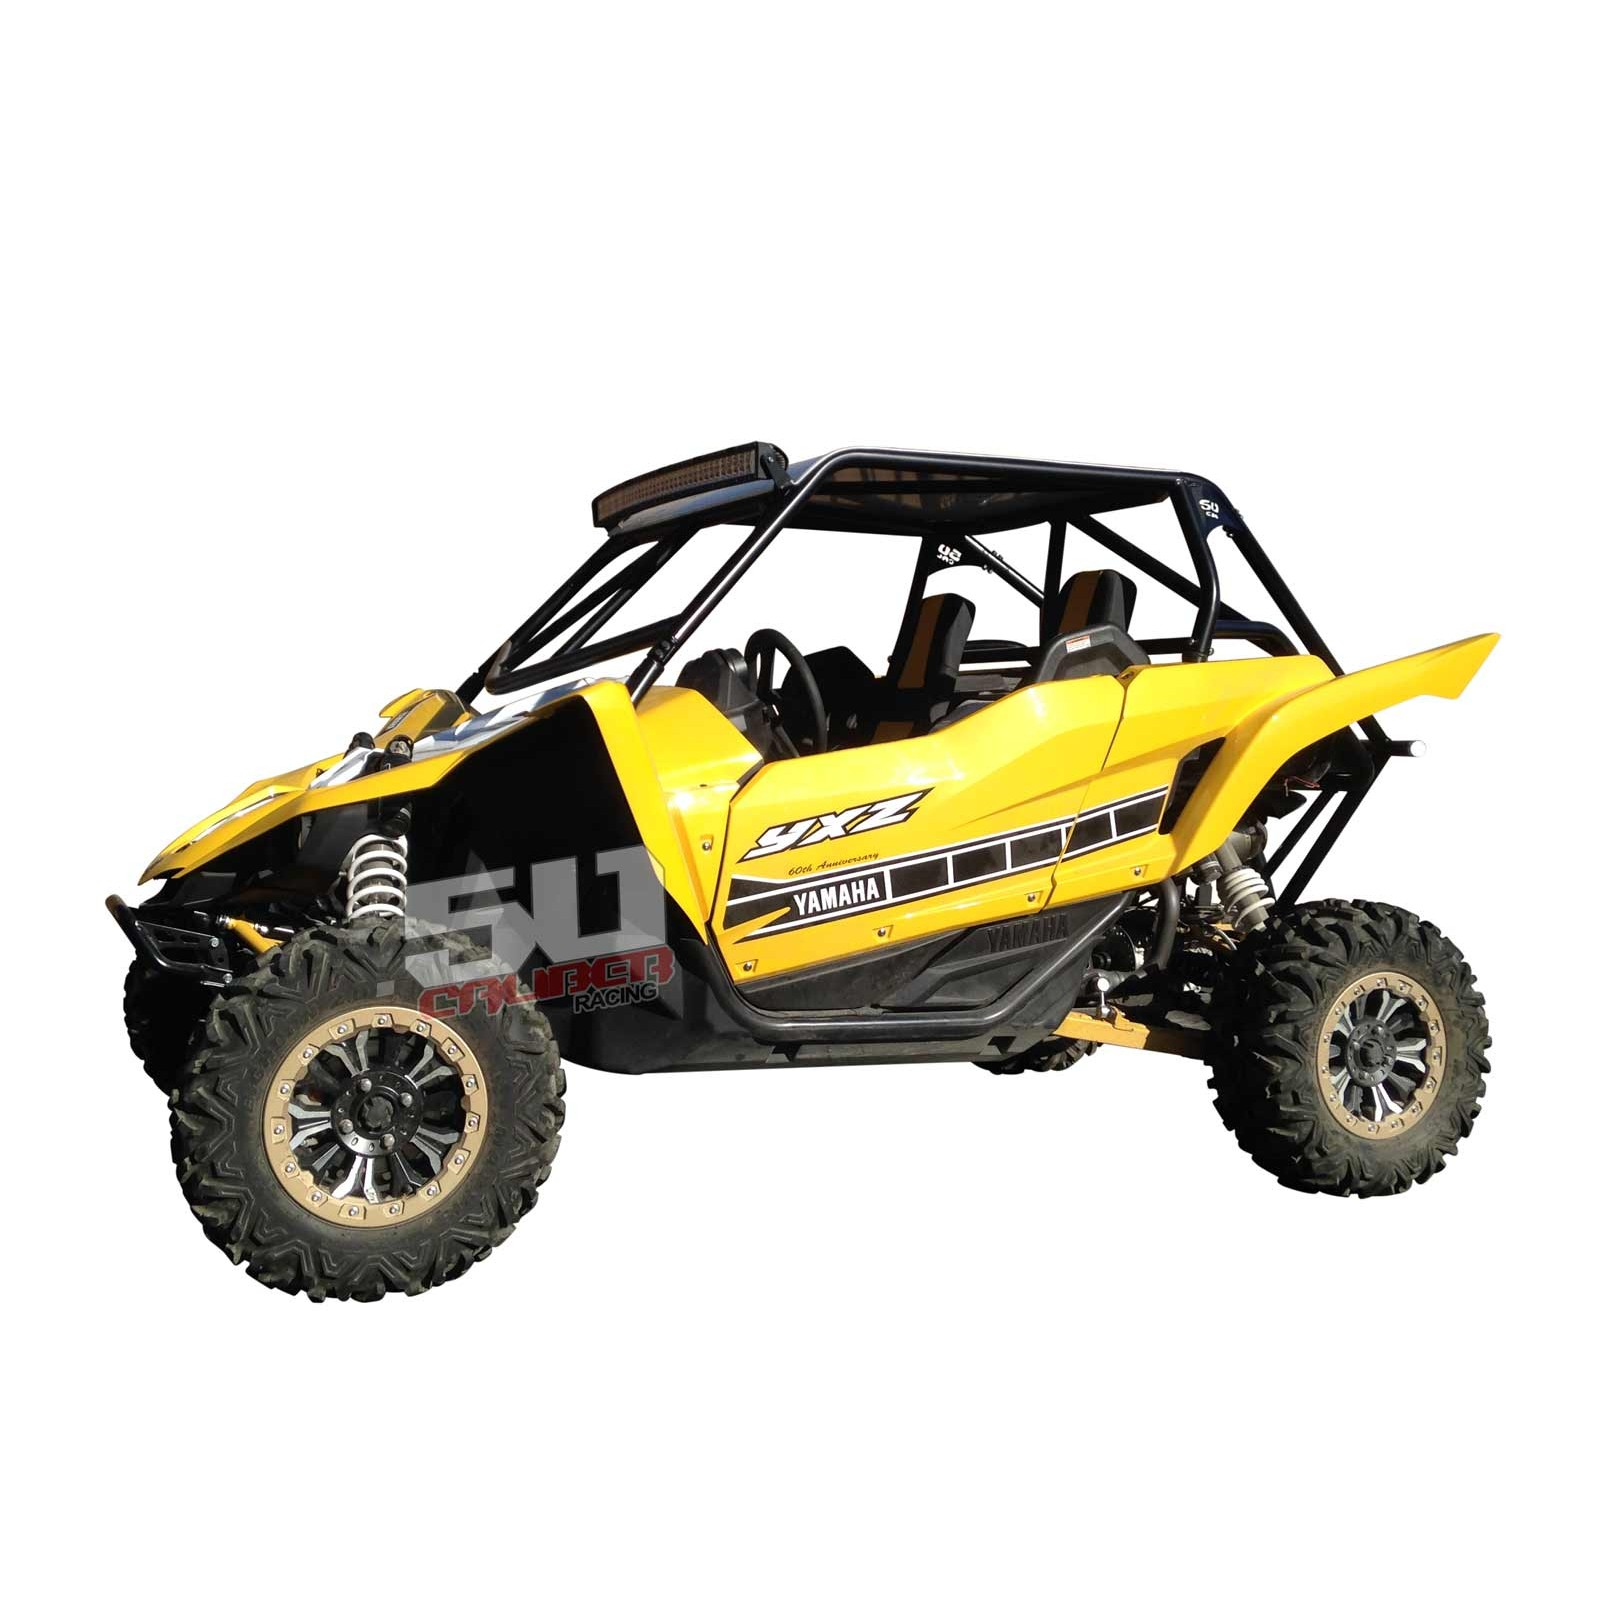 Yamaha YXZ 1000R roll cage with integrated rear bumper and